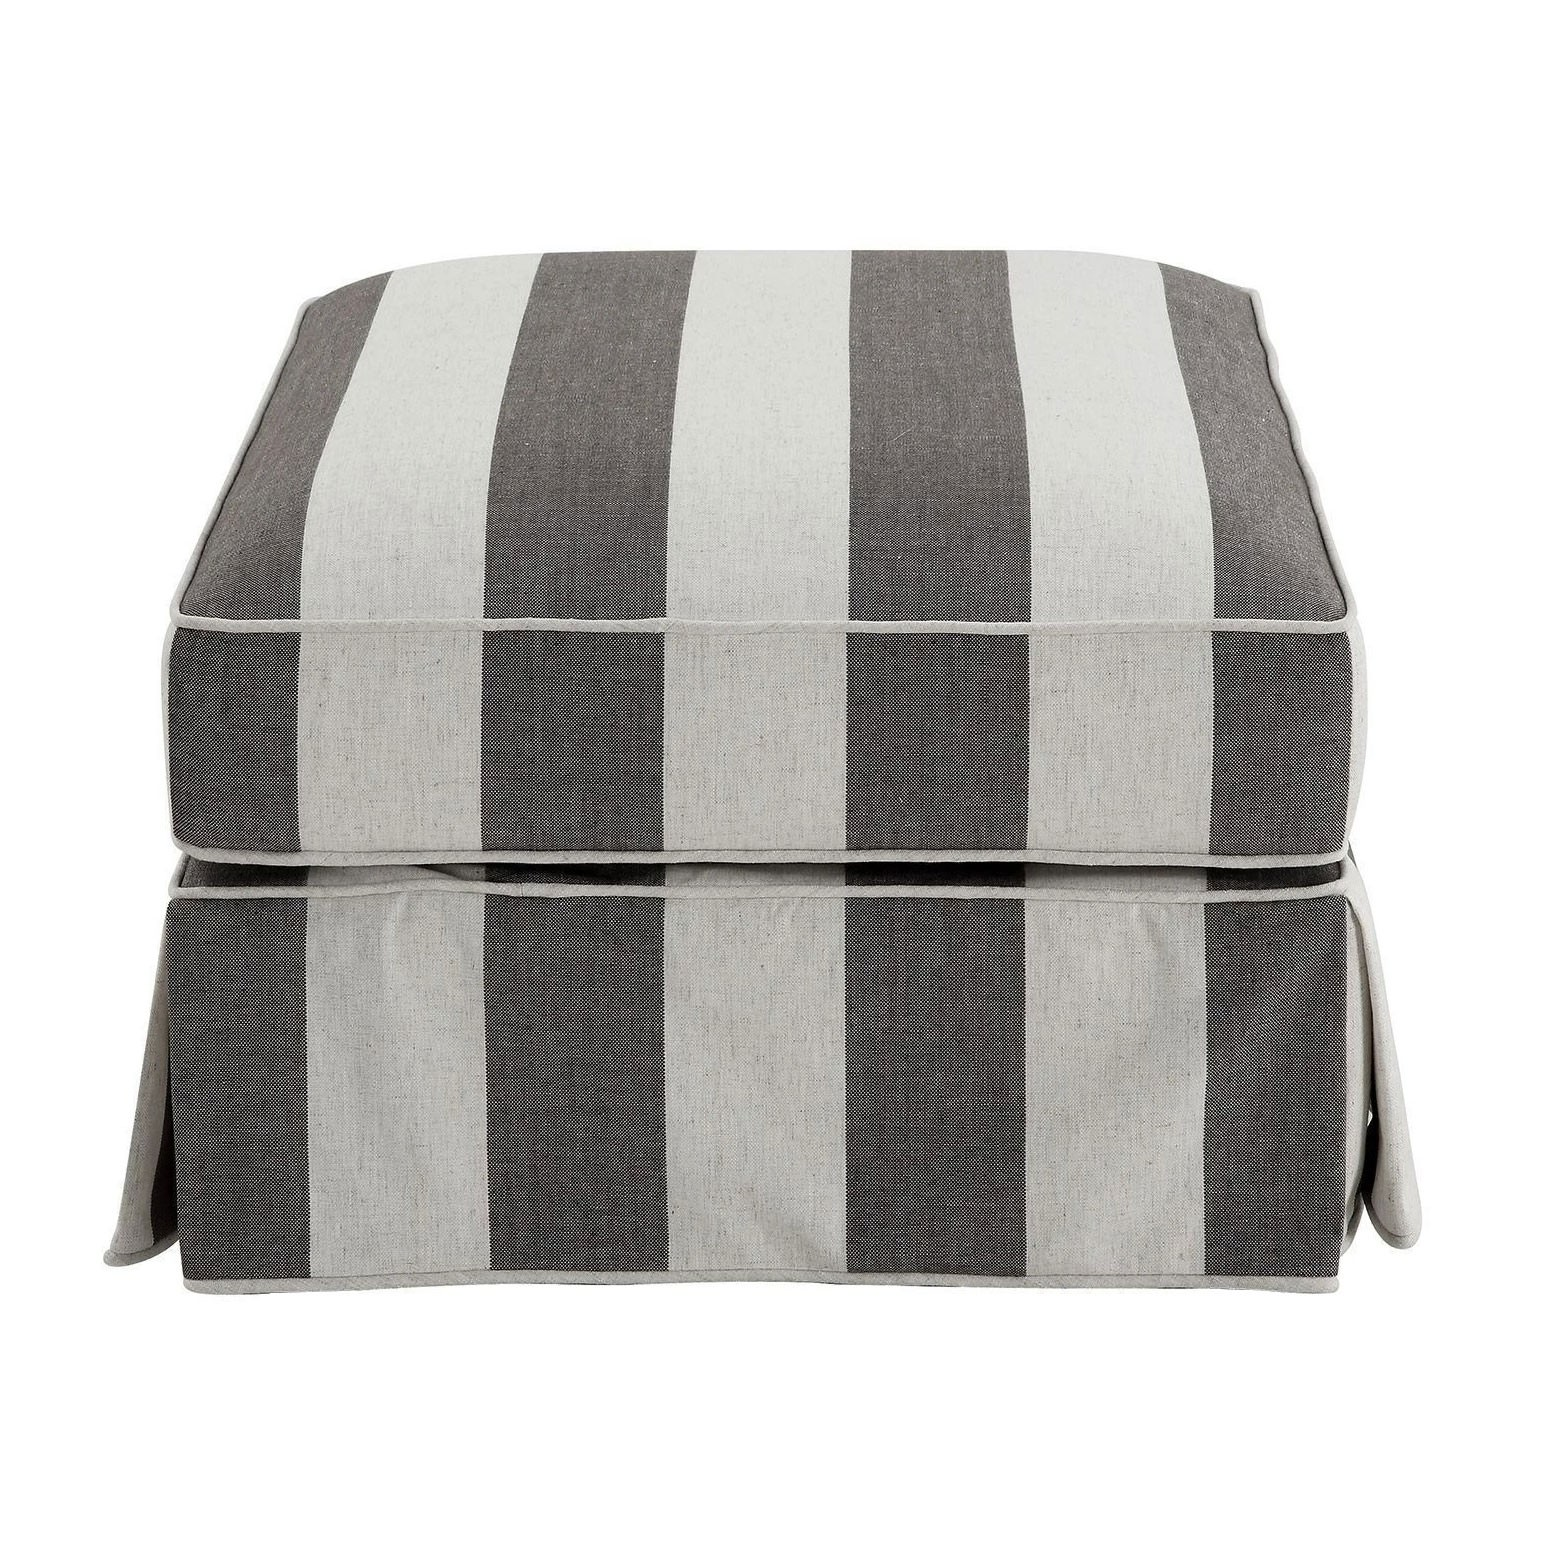 Noosa Fabric Ottoman Slipcover (Cover Only), Charcoal / Cream Stripe